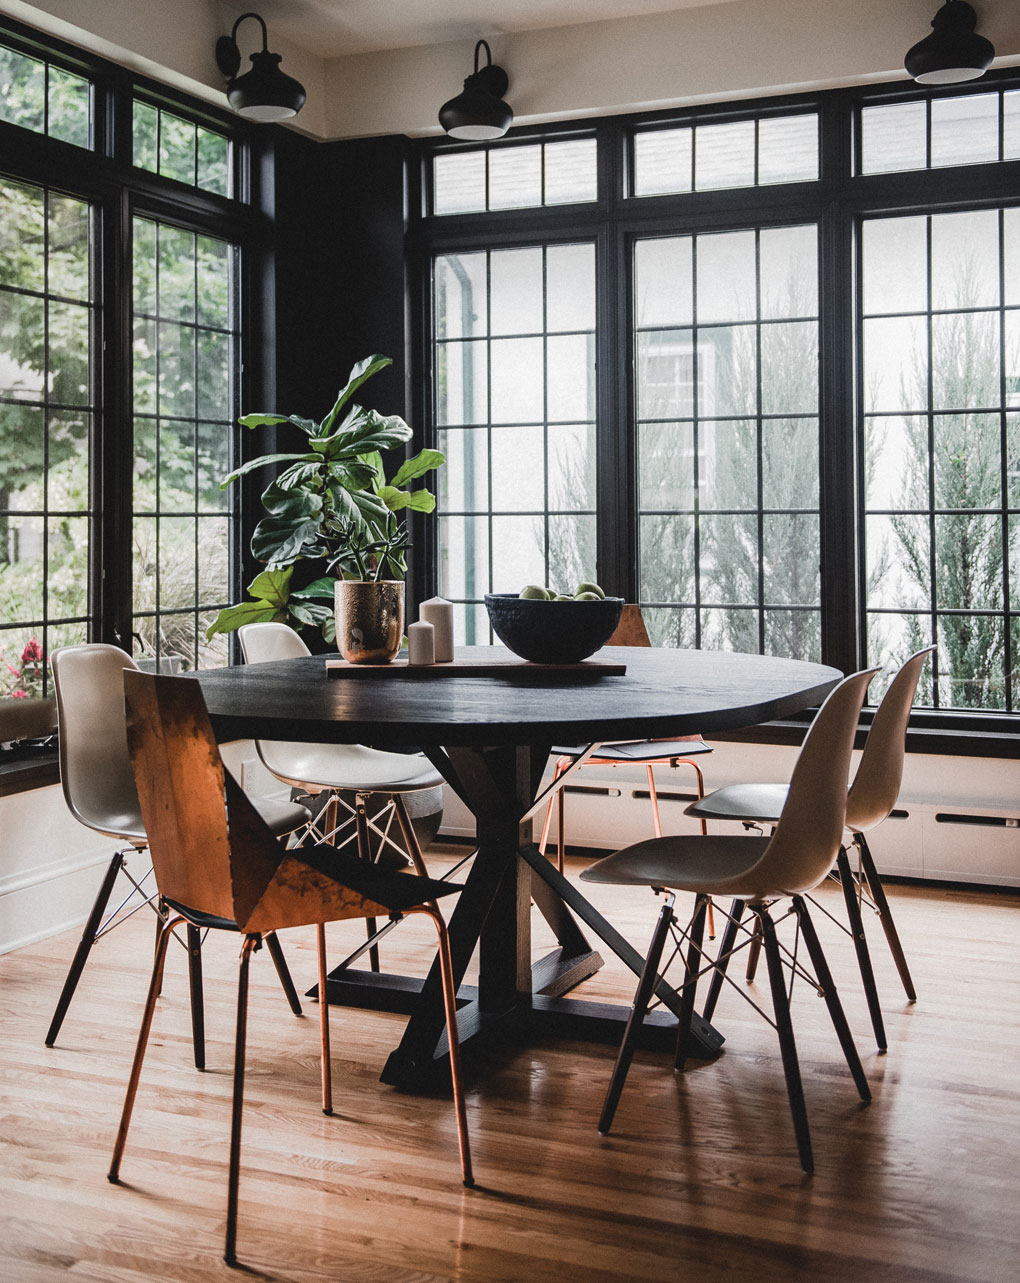 A dining room table is surrounded by unlacquered copper chairs. Behind them are large windows.